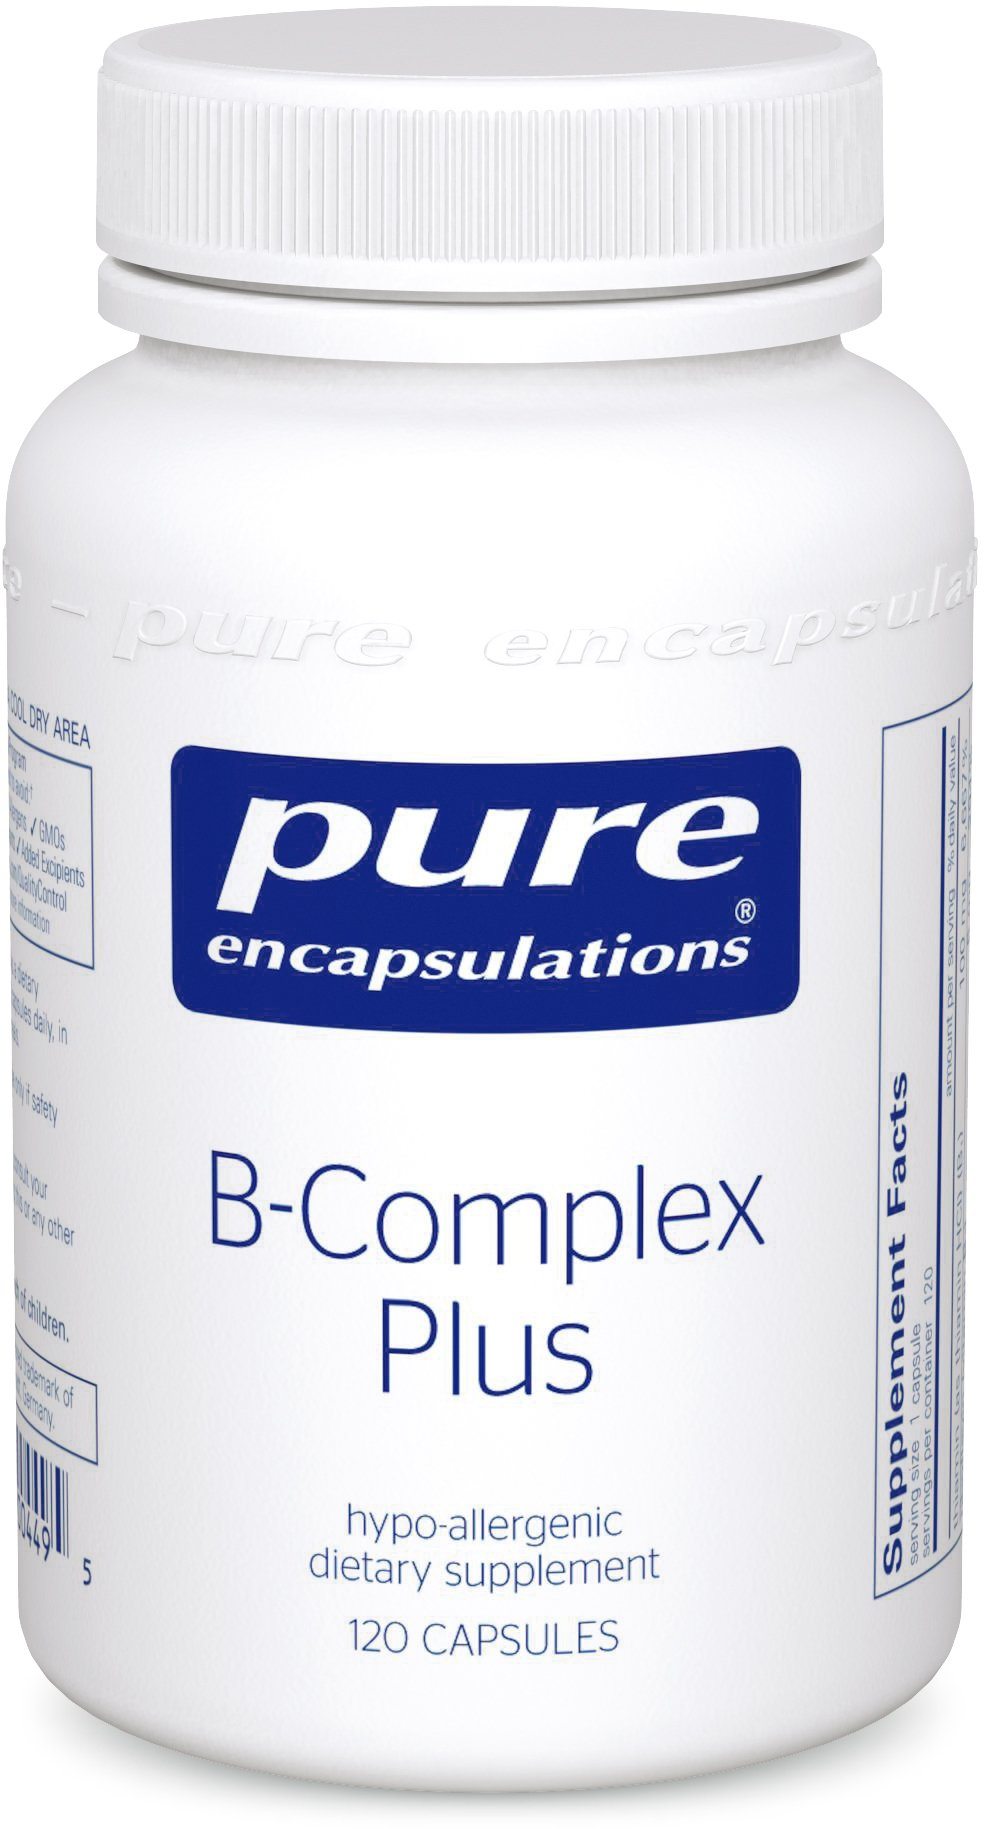 Pure Encapsulations - B-Complex Plus - Balanced B Vitamin Formula with Metafolin® L-5-MTHF and Vitamin B12 - 120 Capsules